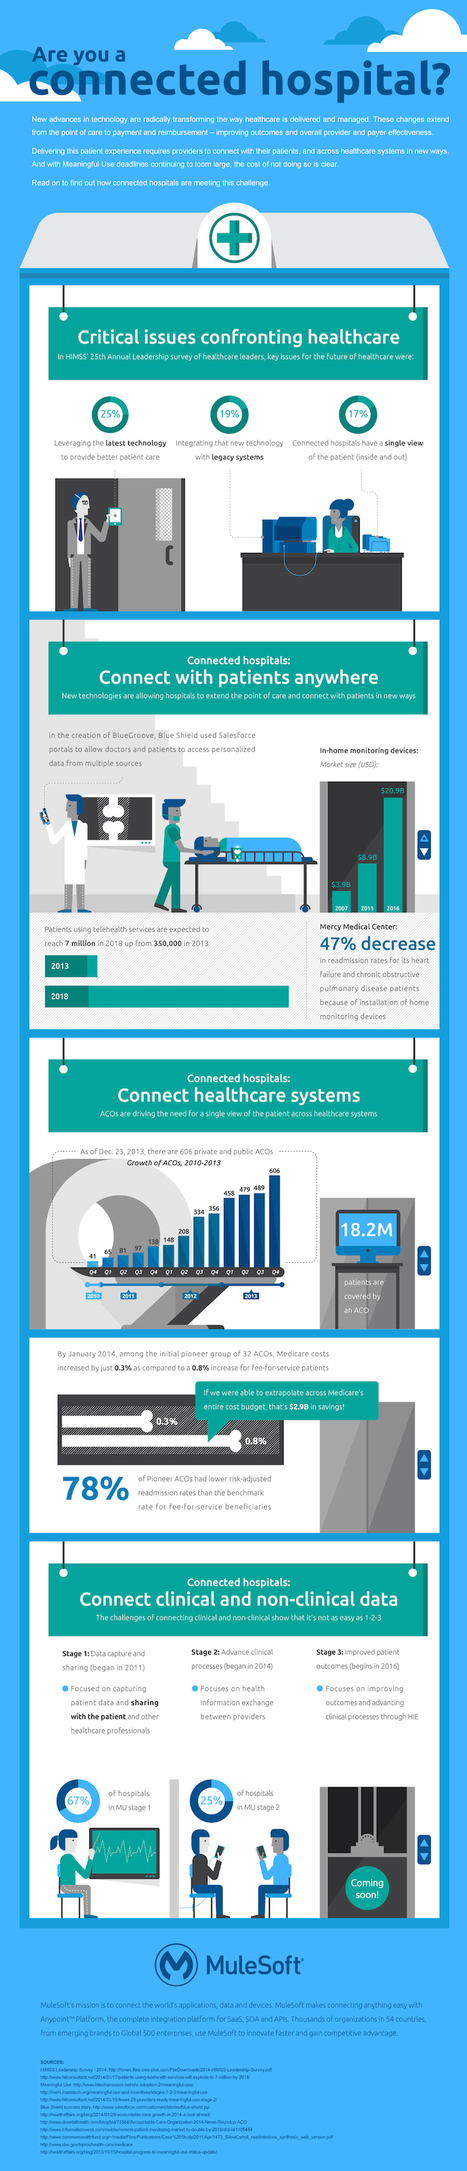 Are you connected Hospital: Future of Healthcare | Medicine in Pictures | Scoop.it